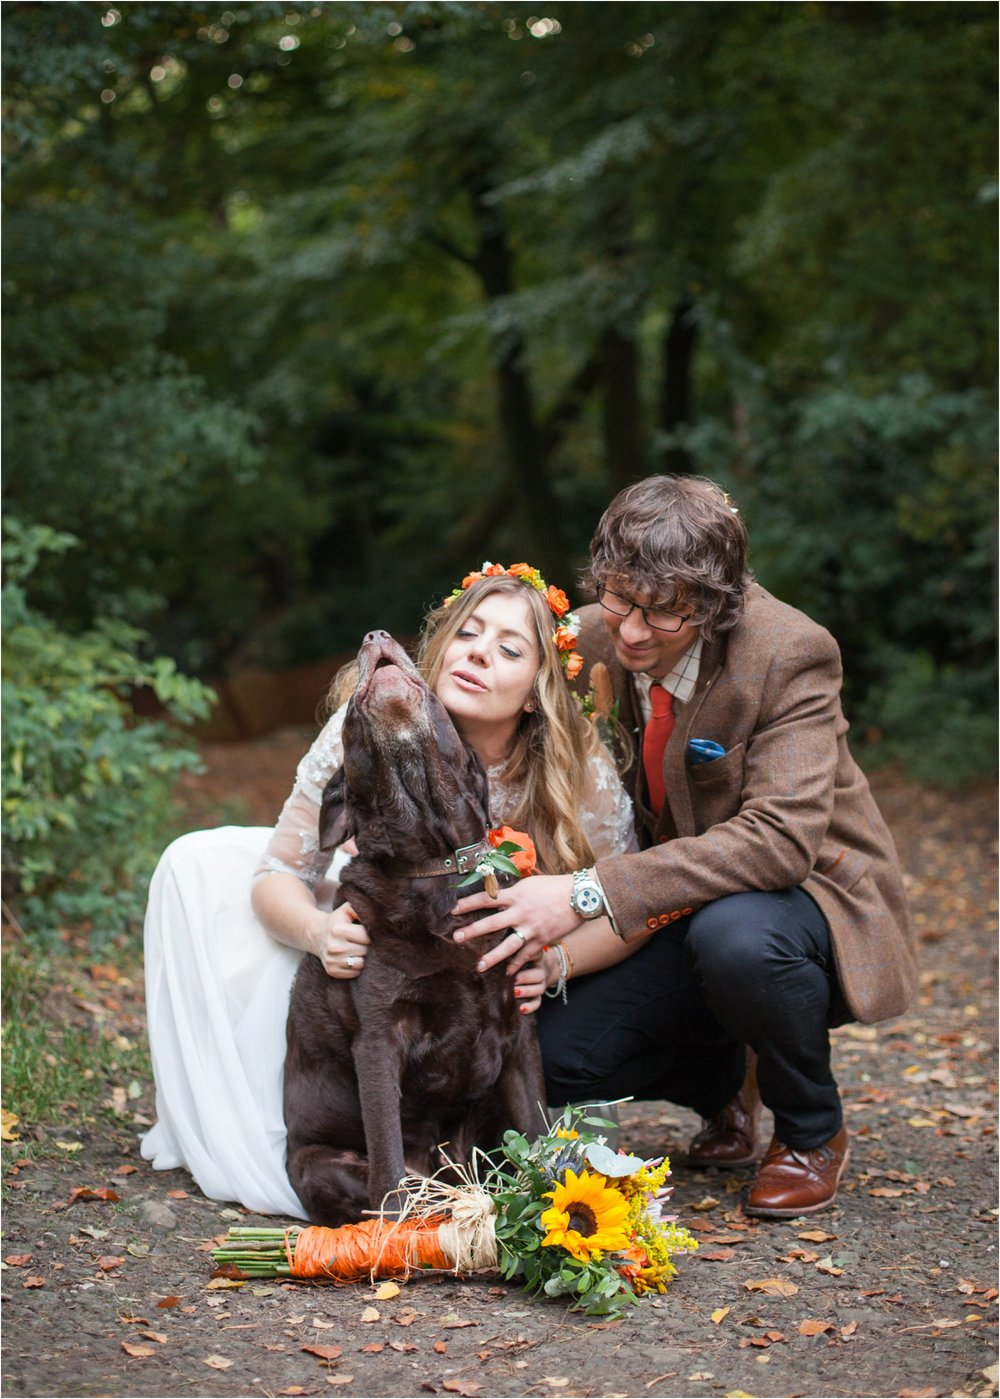 Styal_Wedding_Wilmslow_Cheshire_Autumn_Colourful_photography_0114.jpg